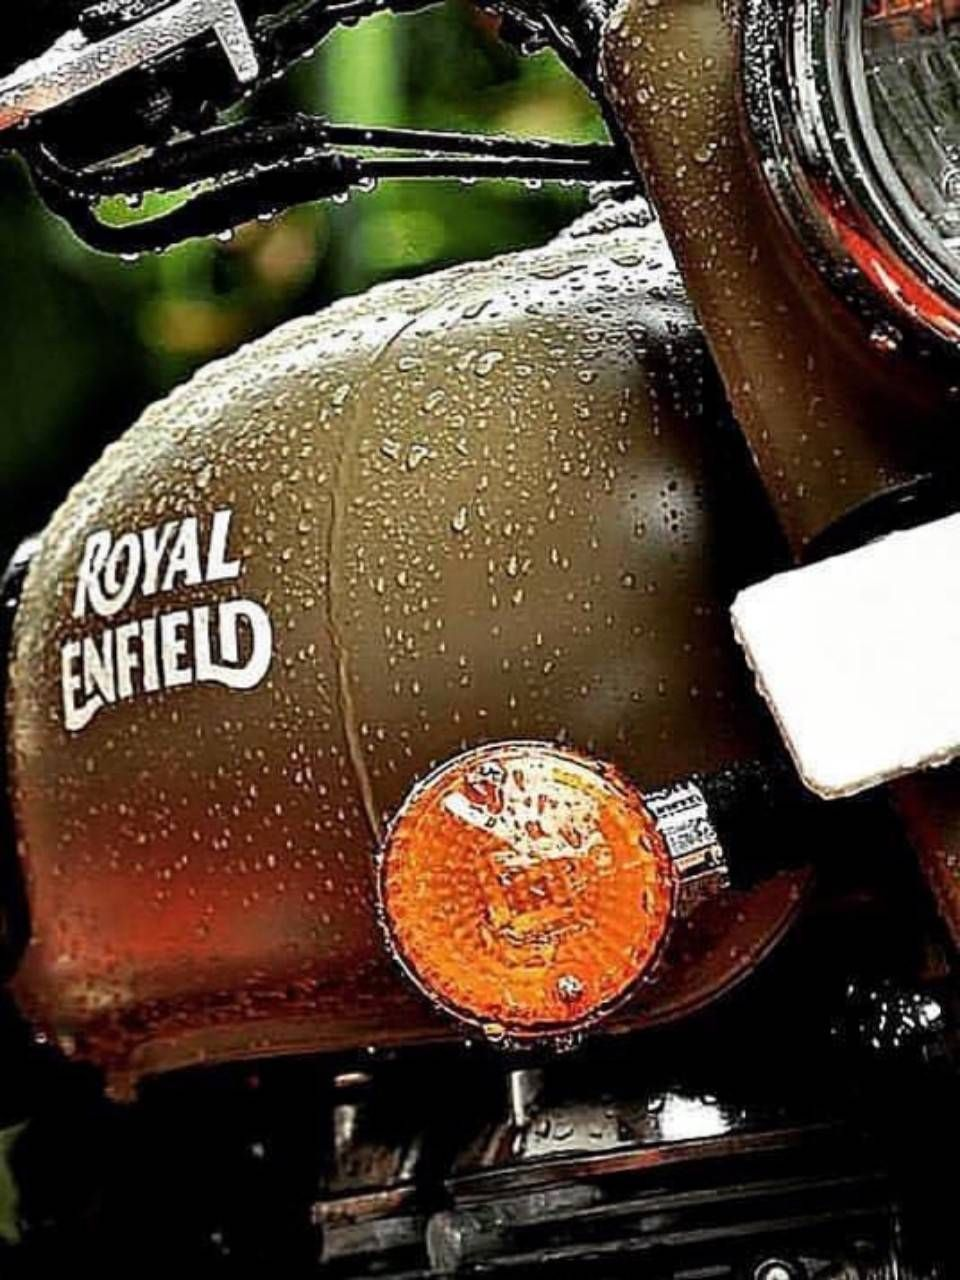 Download Royal Enfield Wallpaper By Drashifeb09 E5 Free On Zedge Now Browse Millions Of Popul Royal Enfield Wallpapers Royal Enfield Royal Enfield Bullet